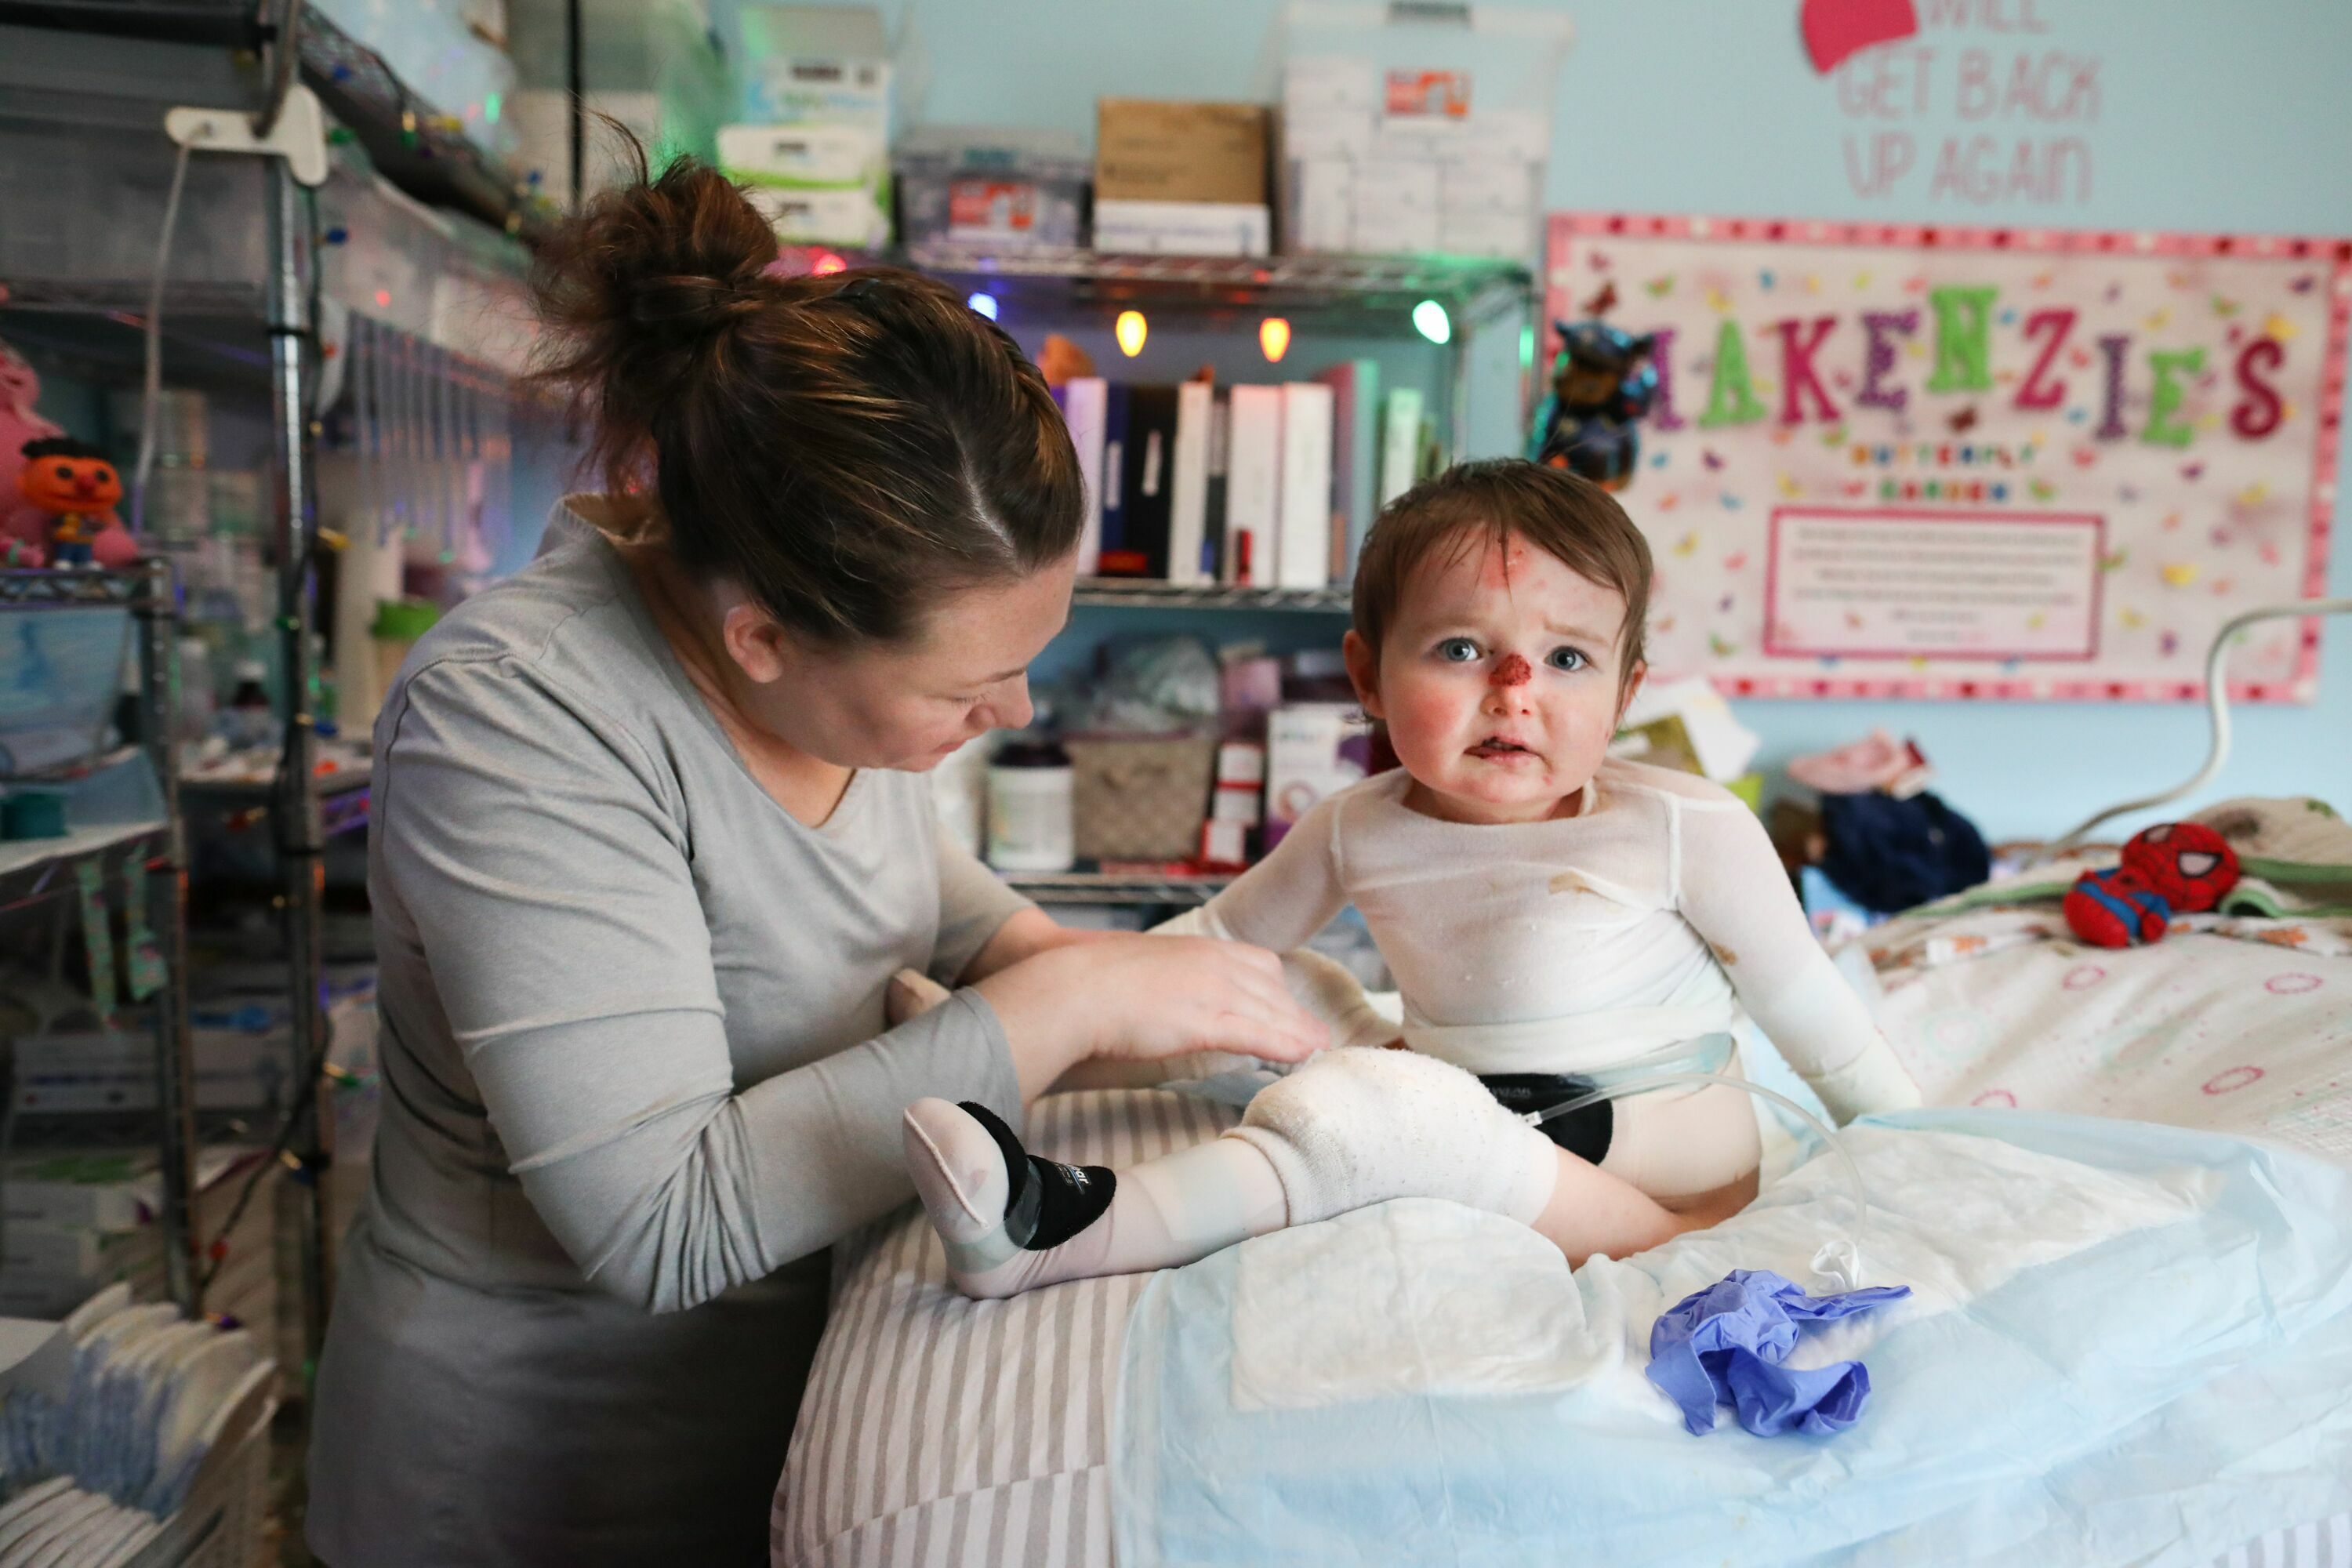 Mother bandages her young child with epidermolysis bullosa